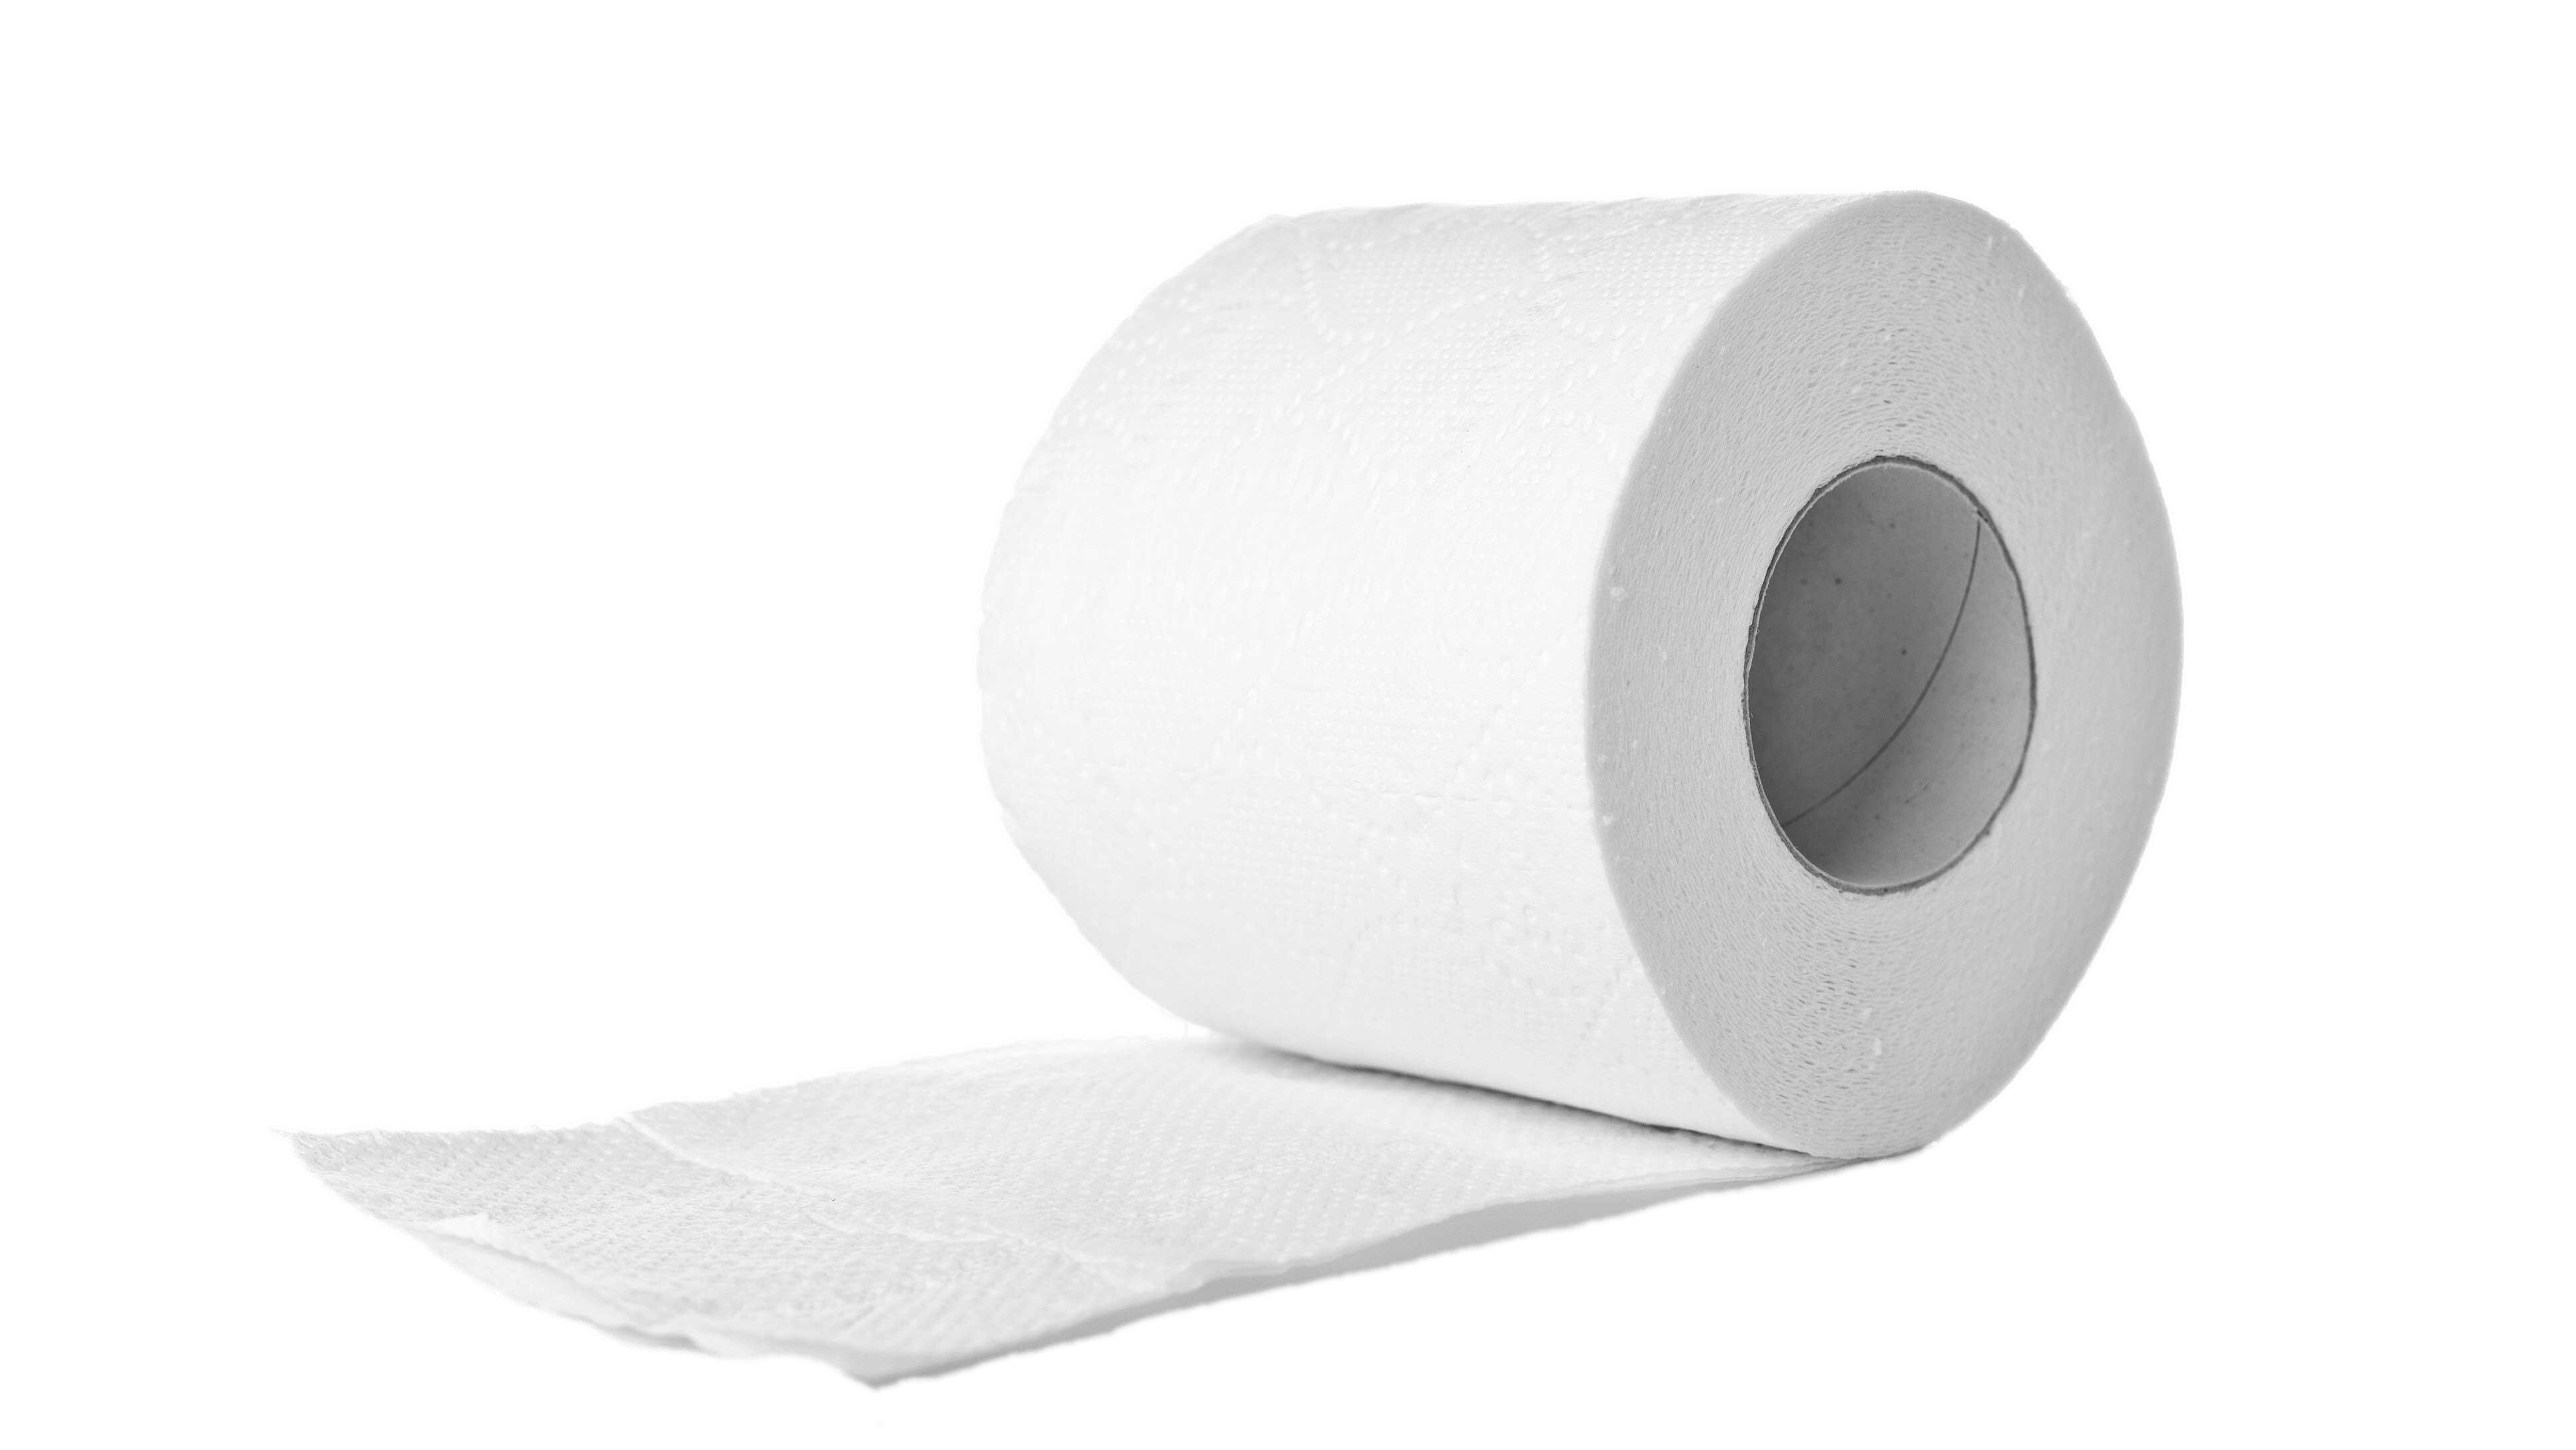 Toilet Paper Roll Transparent Png Stickpng